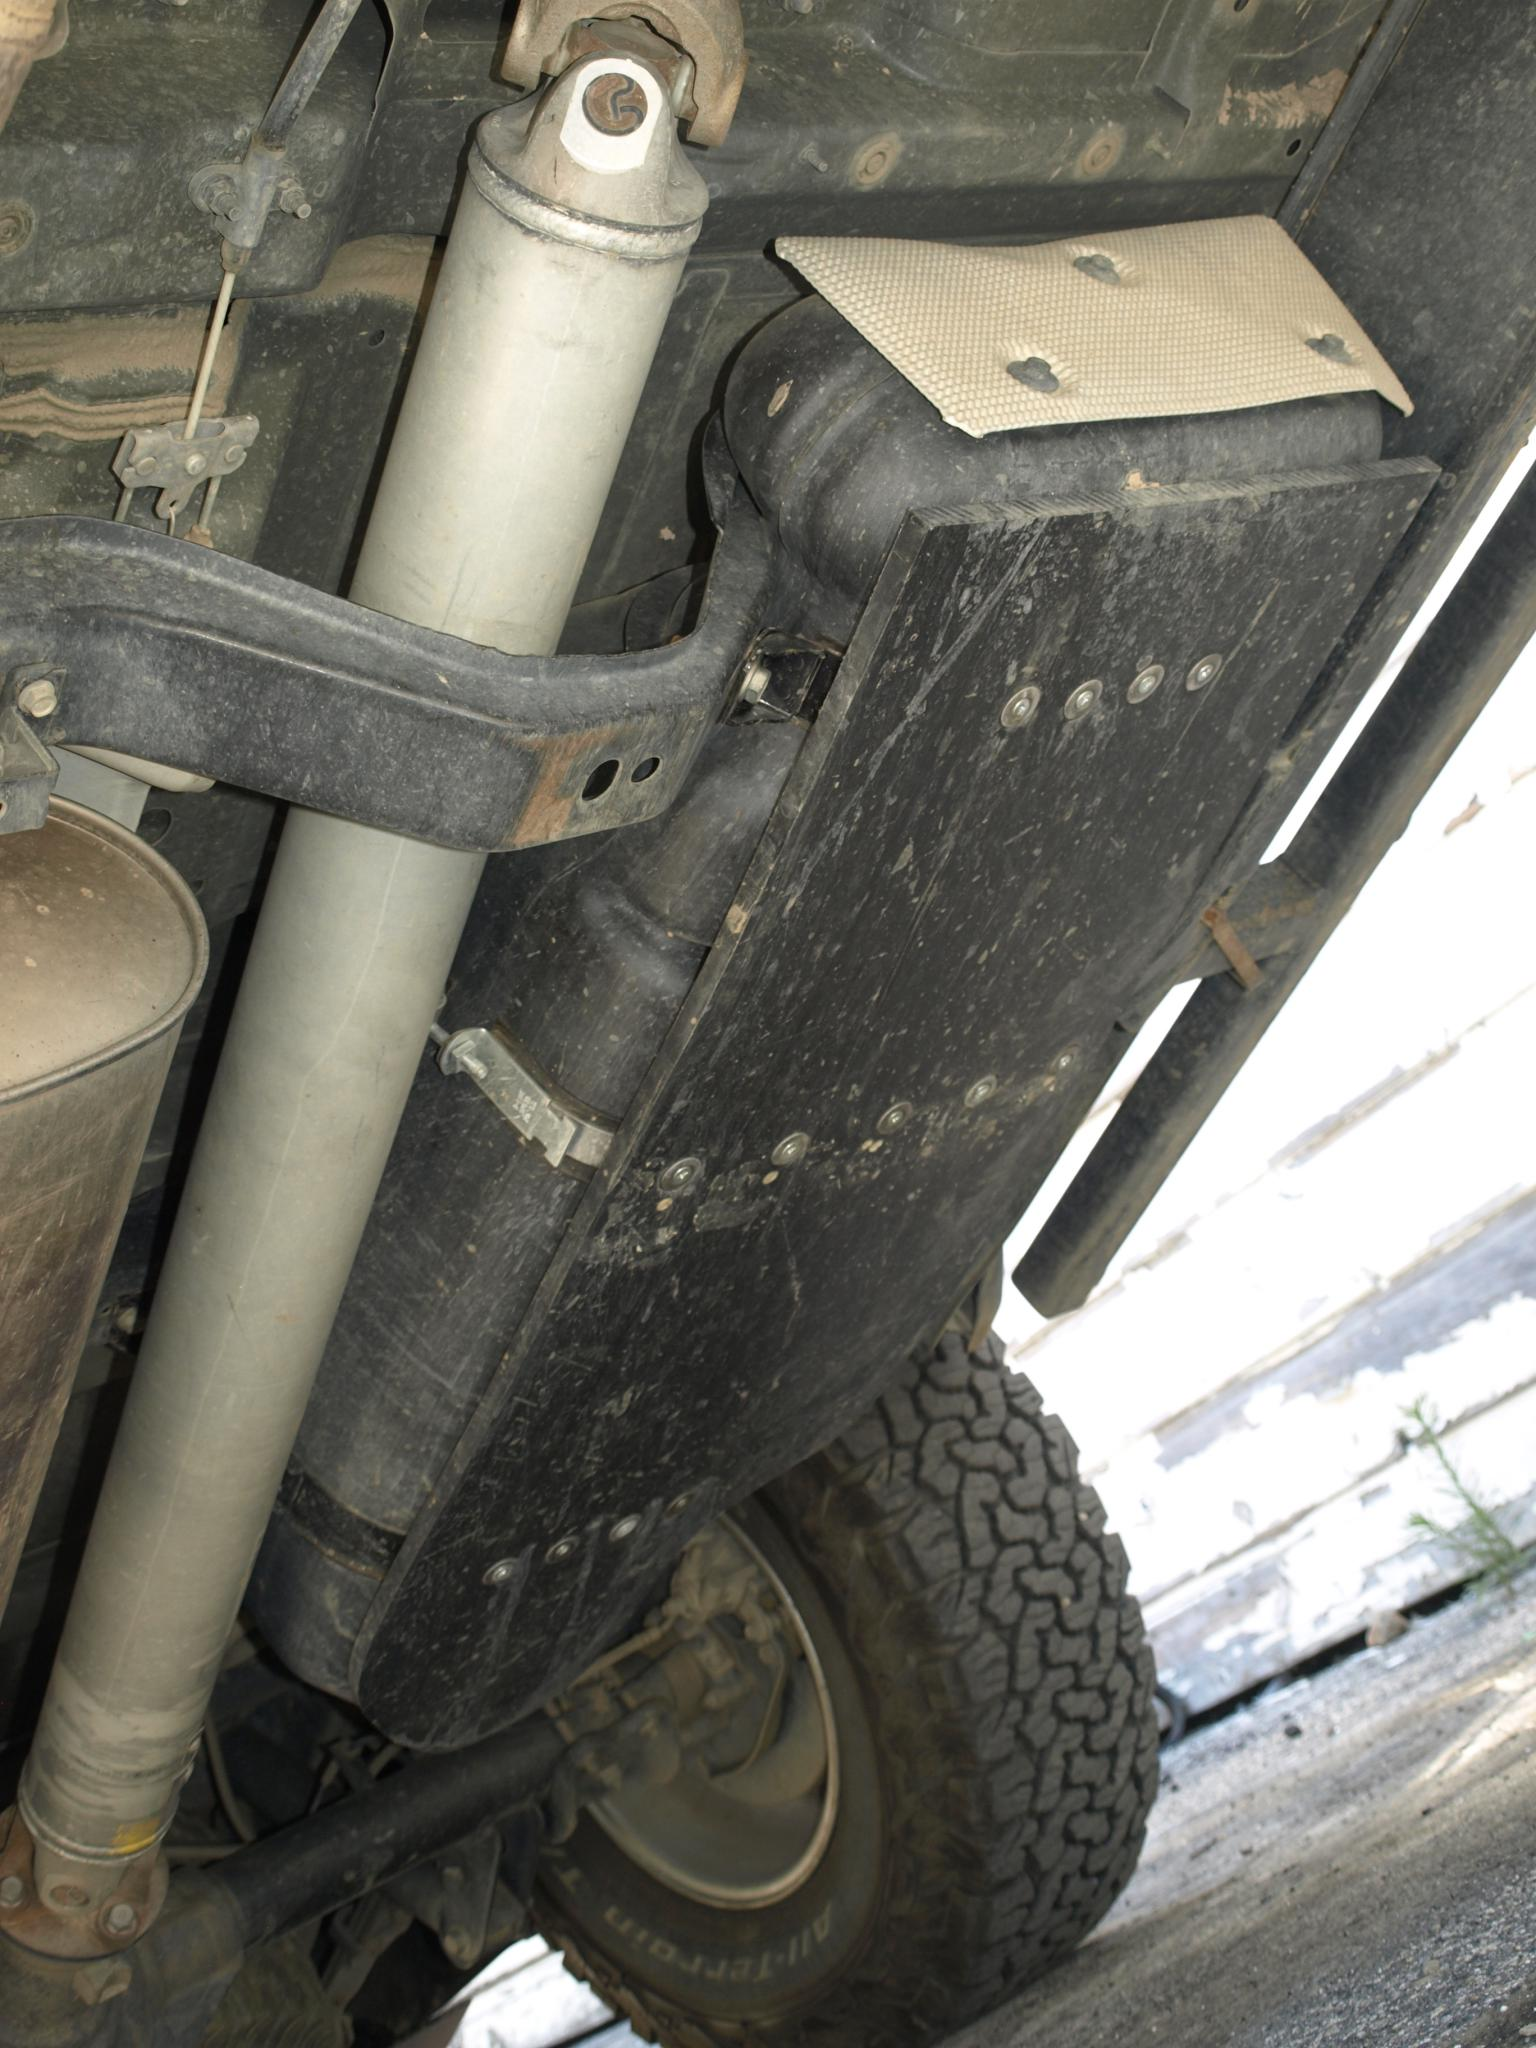 ... Click image for larger version Name _7250301.jpg Views 1197 Size 316.8 & Plastic Gas Tank Skid Plate - Nissan Frontier Forum